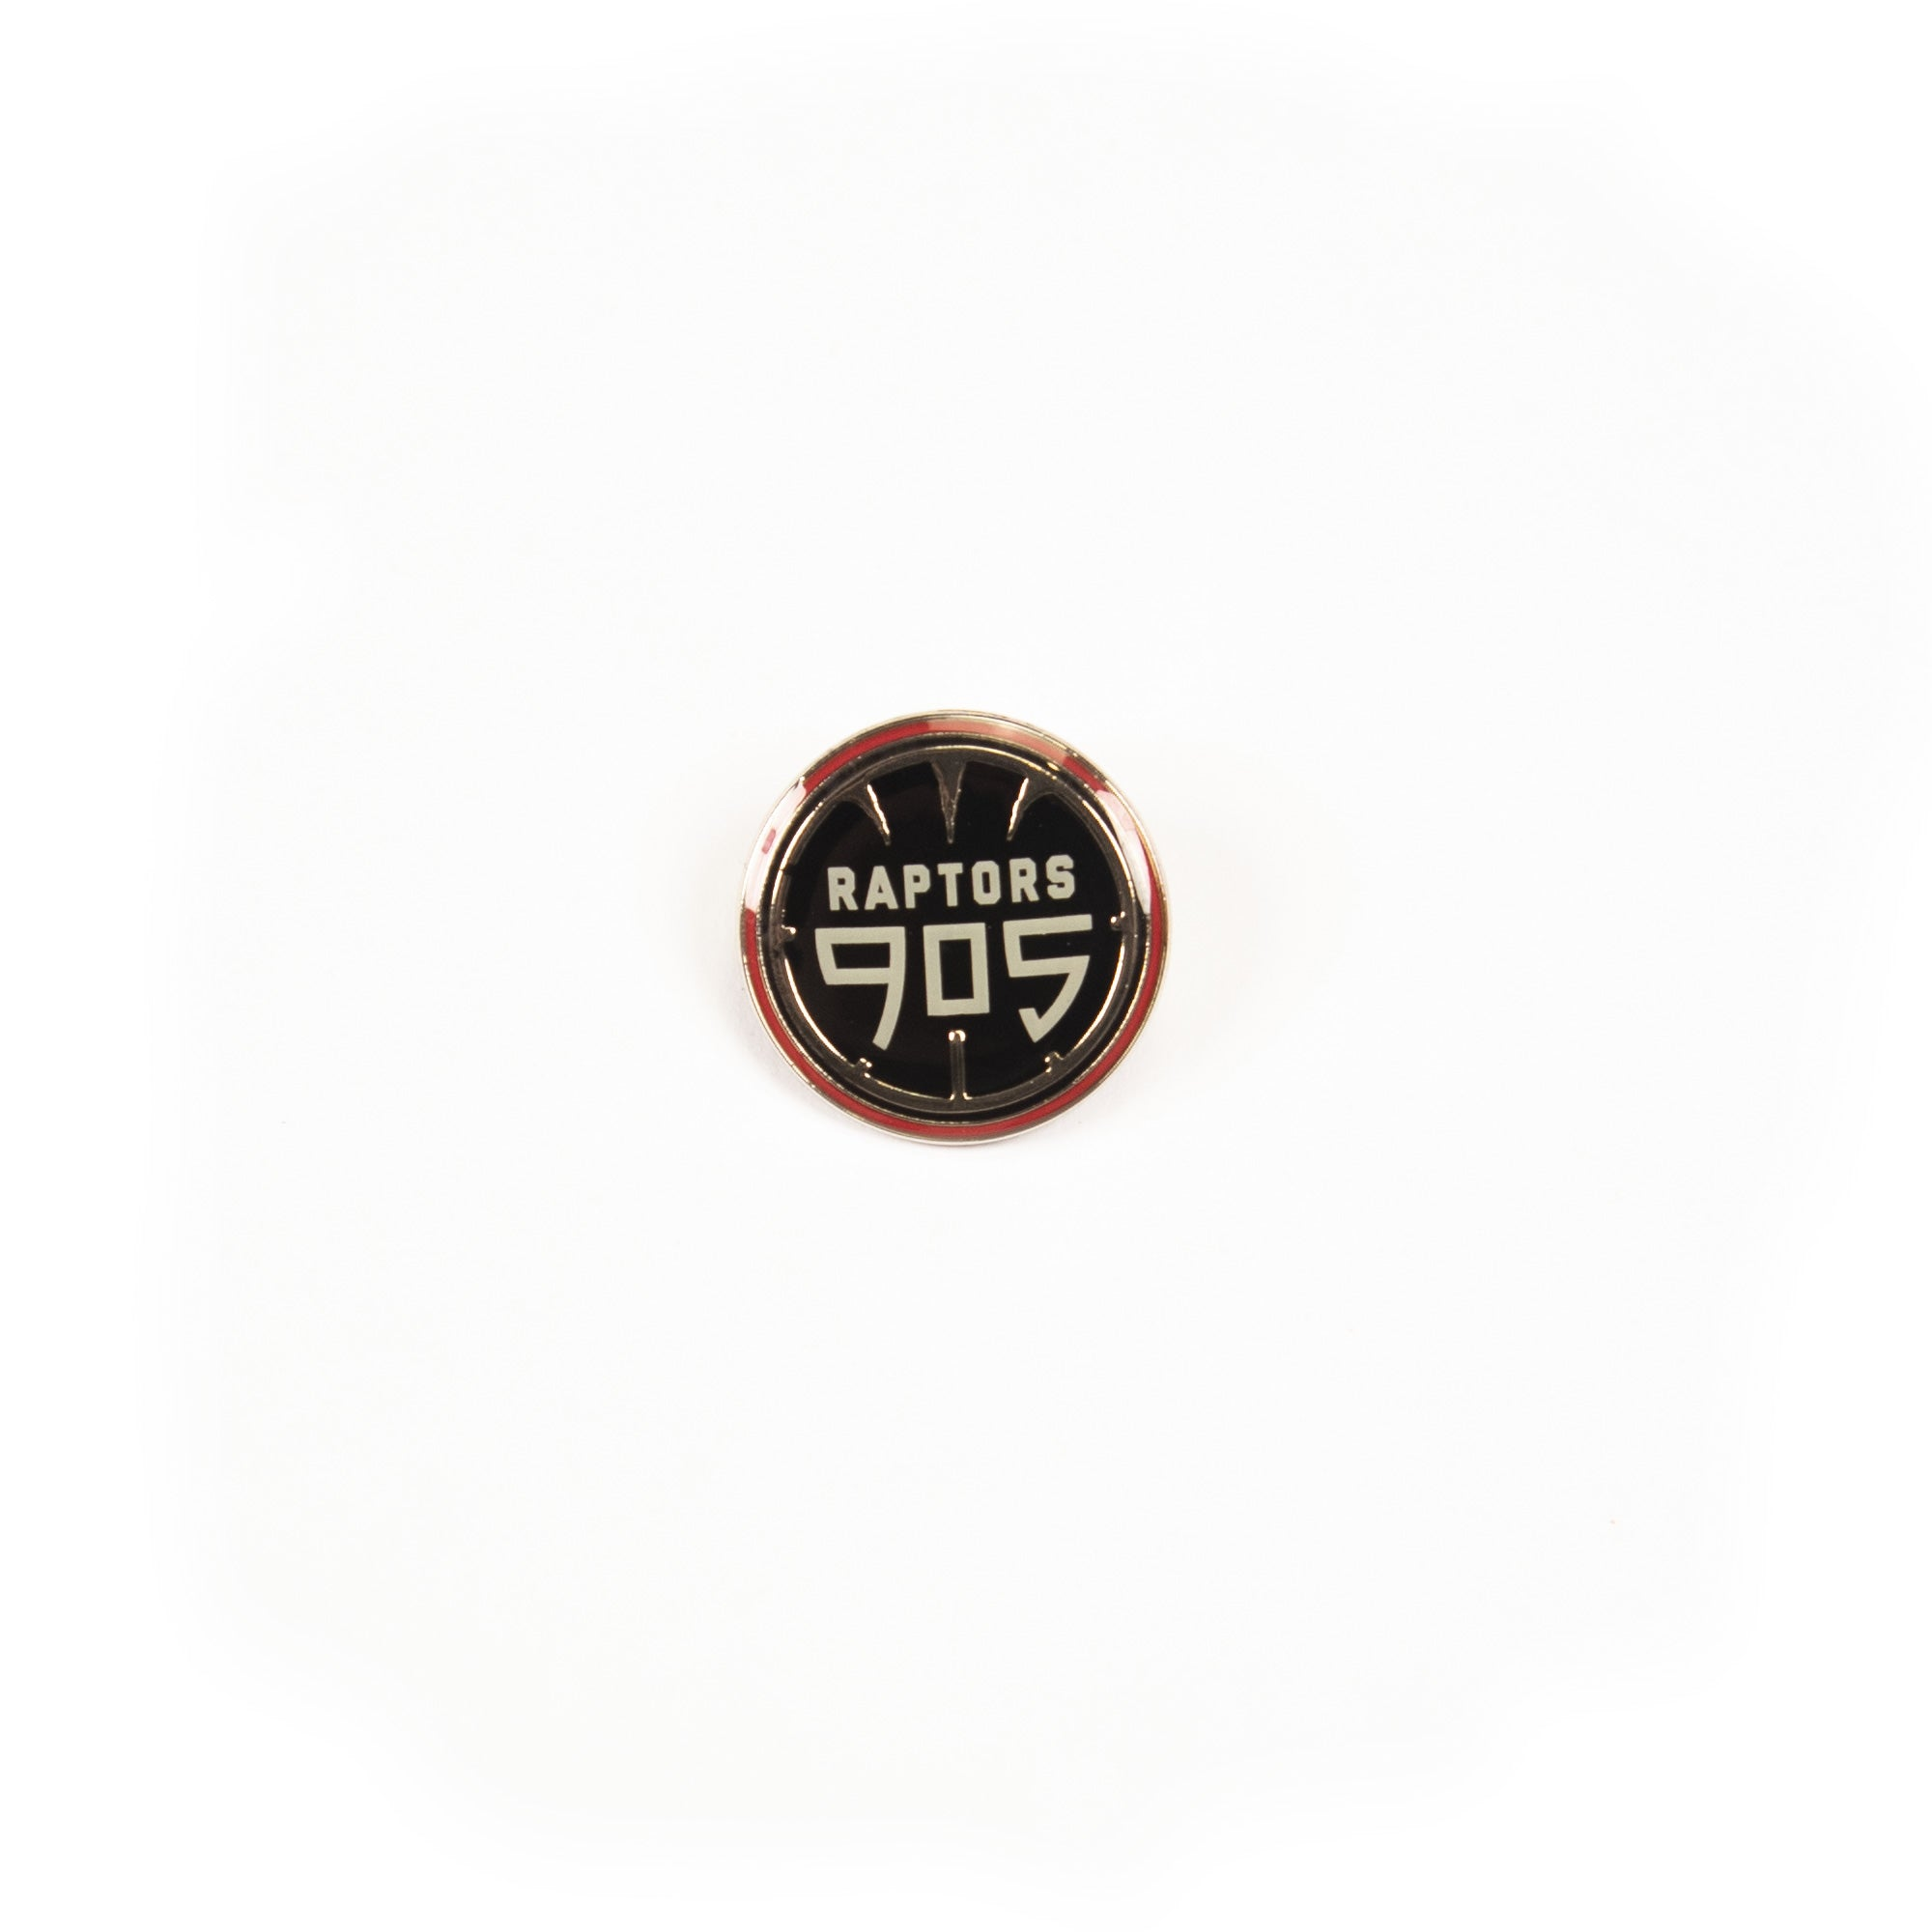 Raptors 905 Lapel Pin